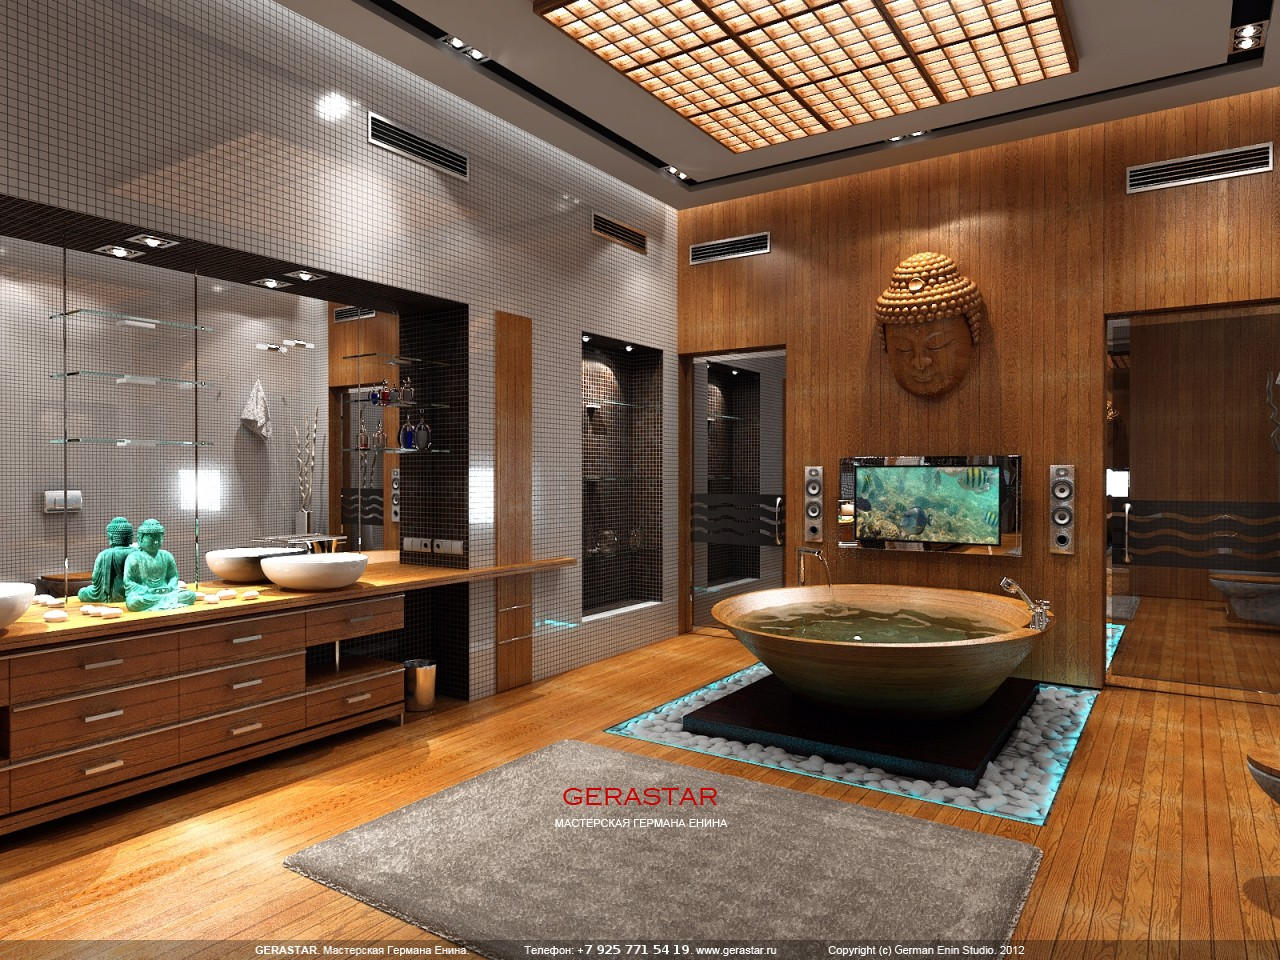 Bon Design, Bathroom Designer, Enin German, Design Bureau, Gerastar,